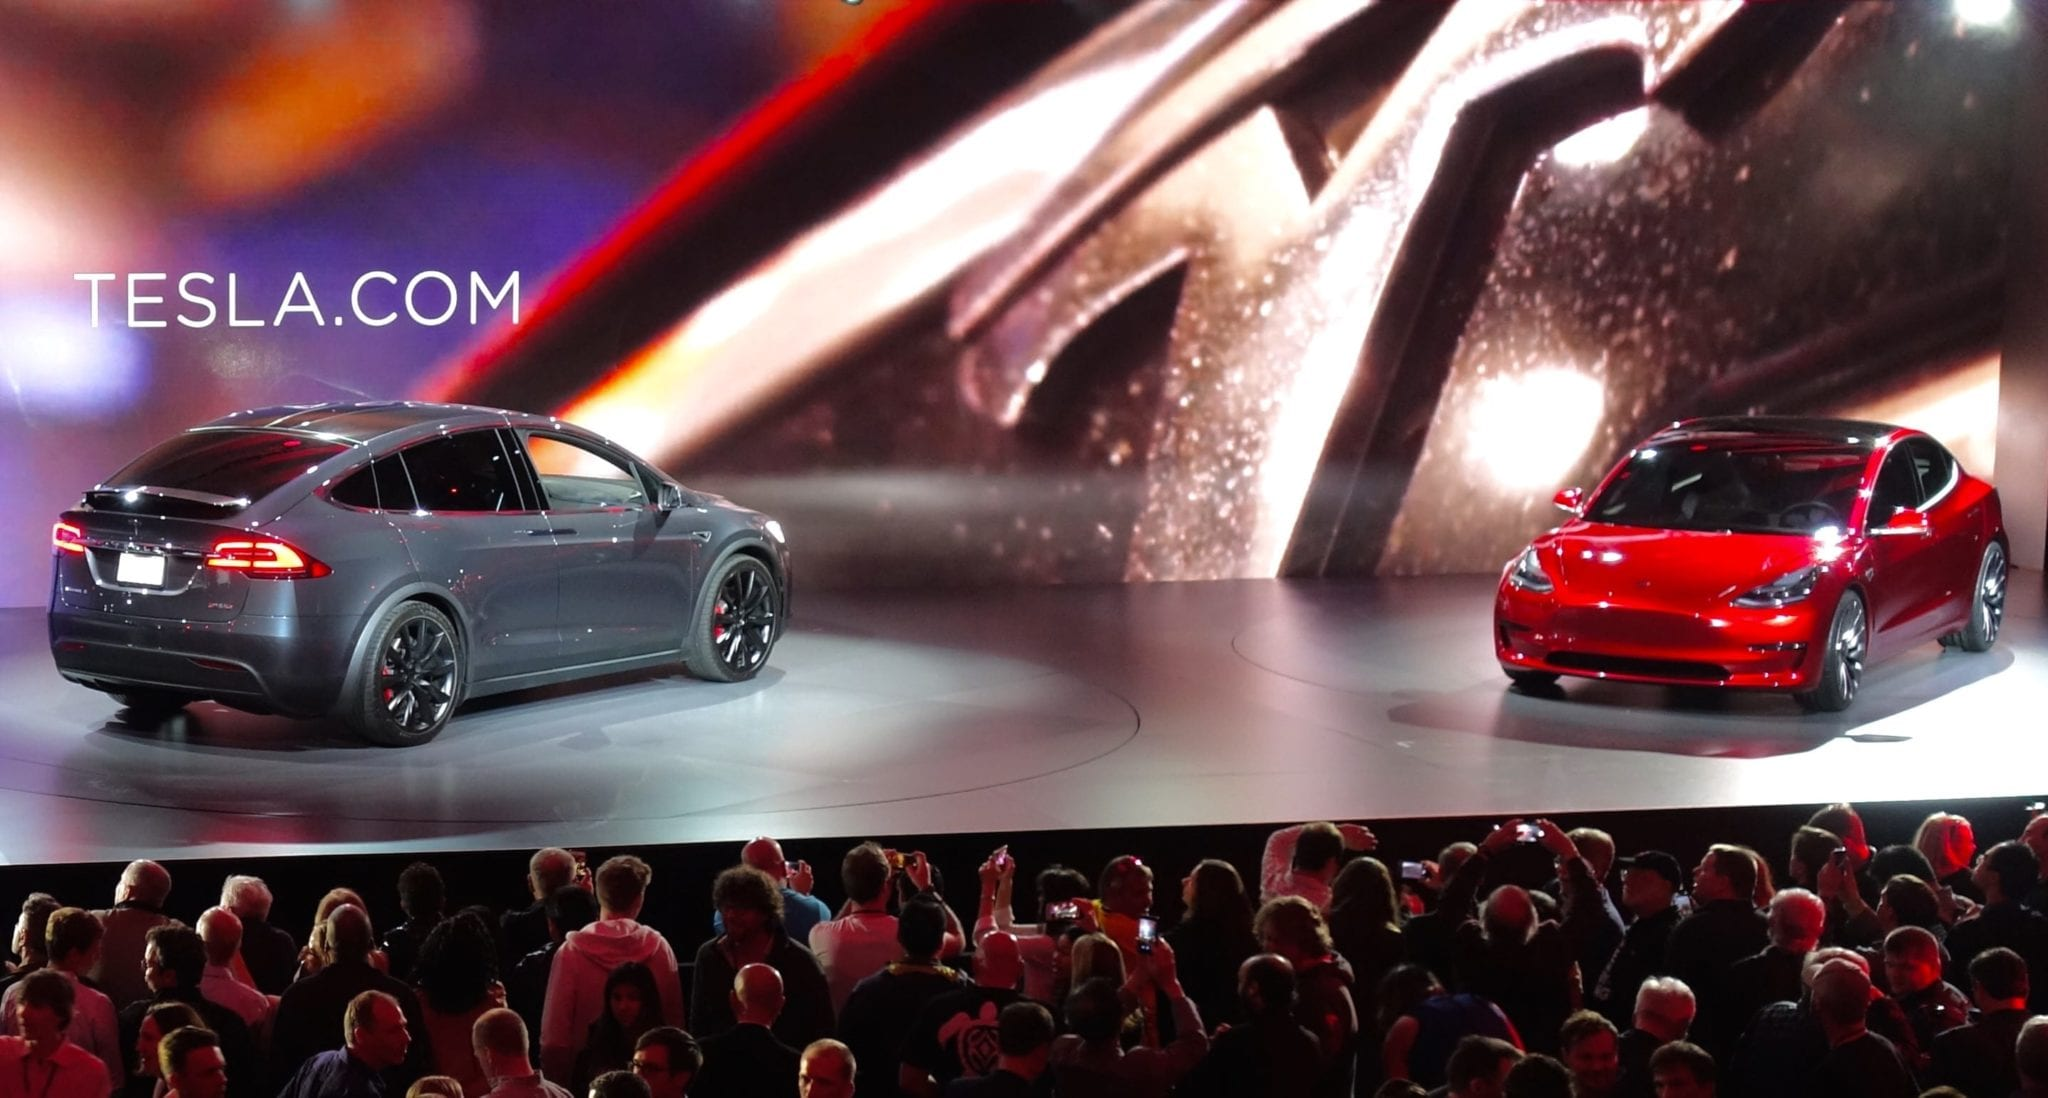 tesla_model_x_and_model_3_at_the_unveiling_event